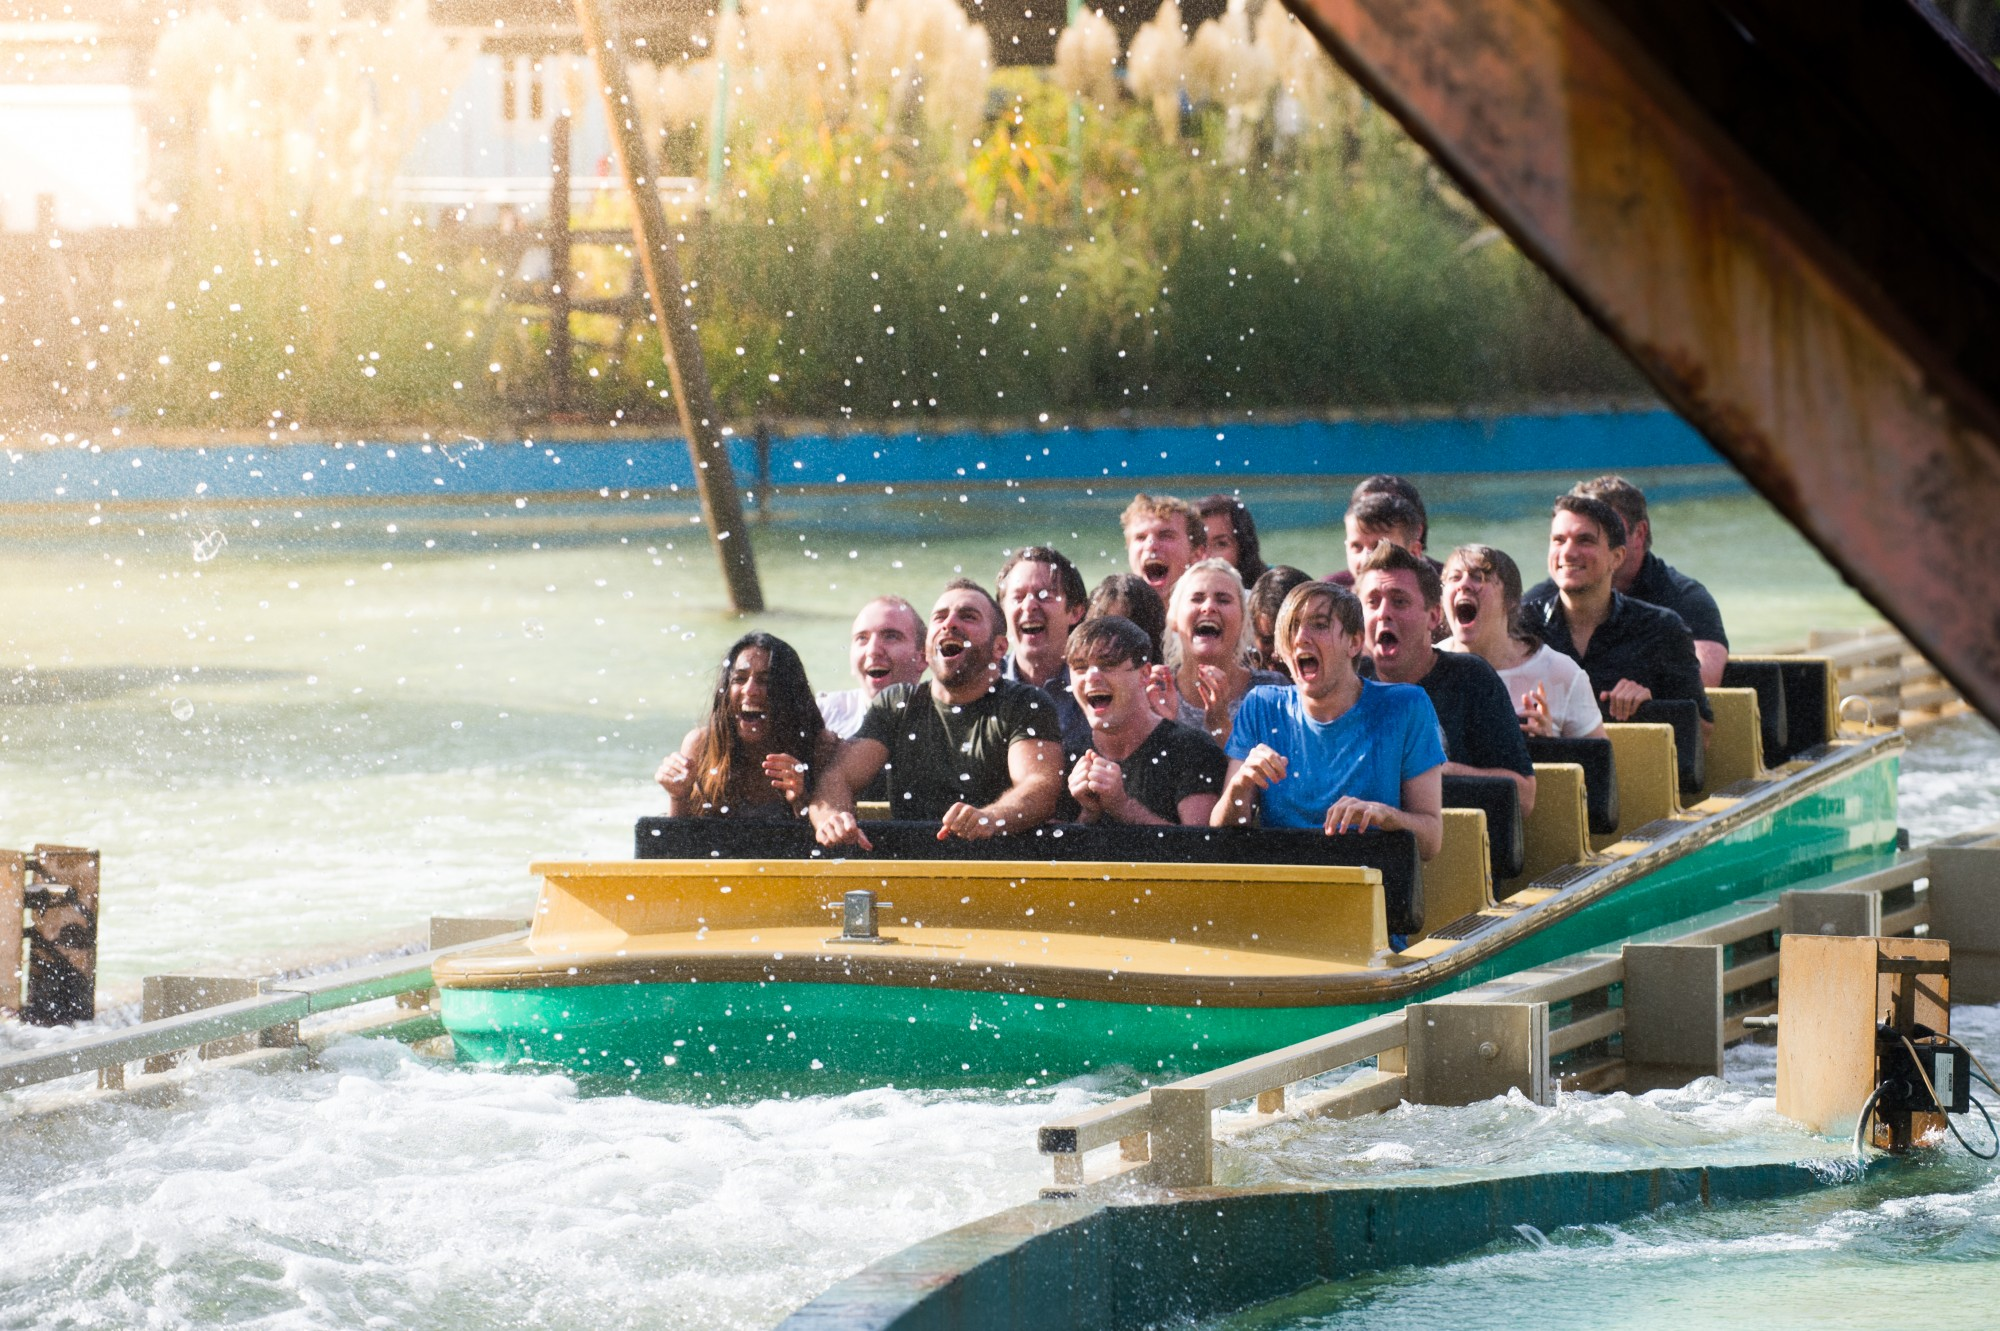 People riding the log flume at Thorpe Park